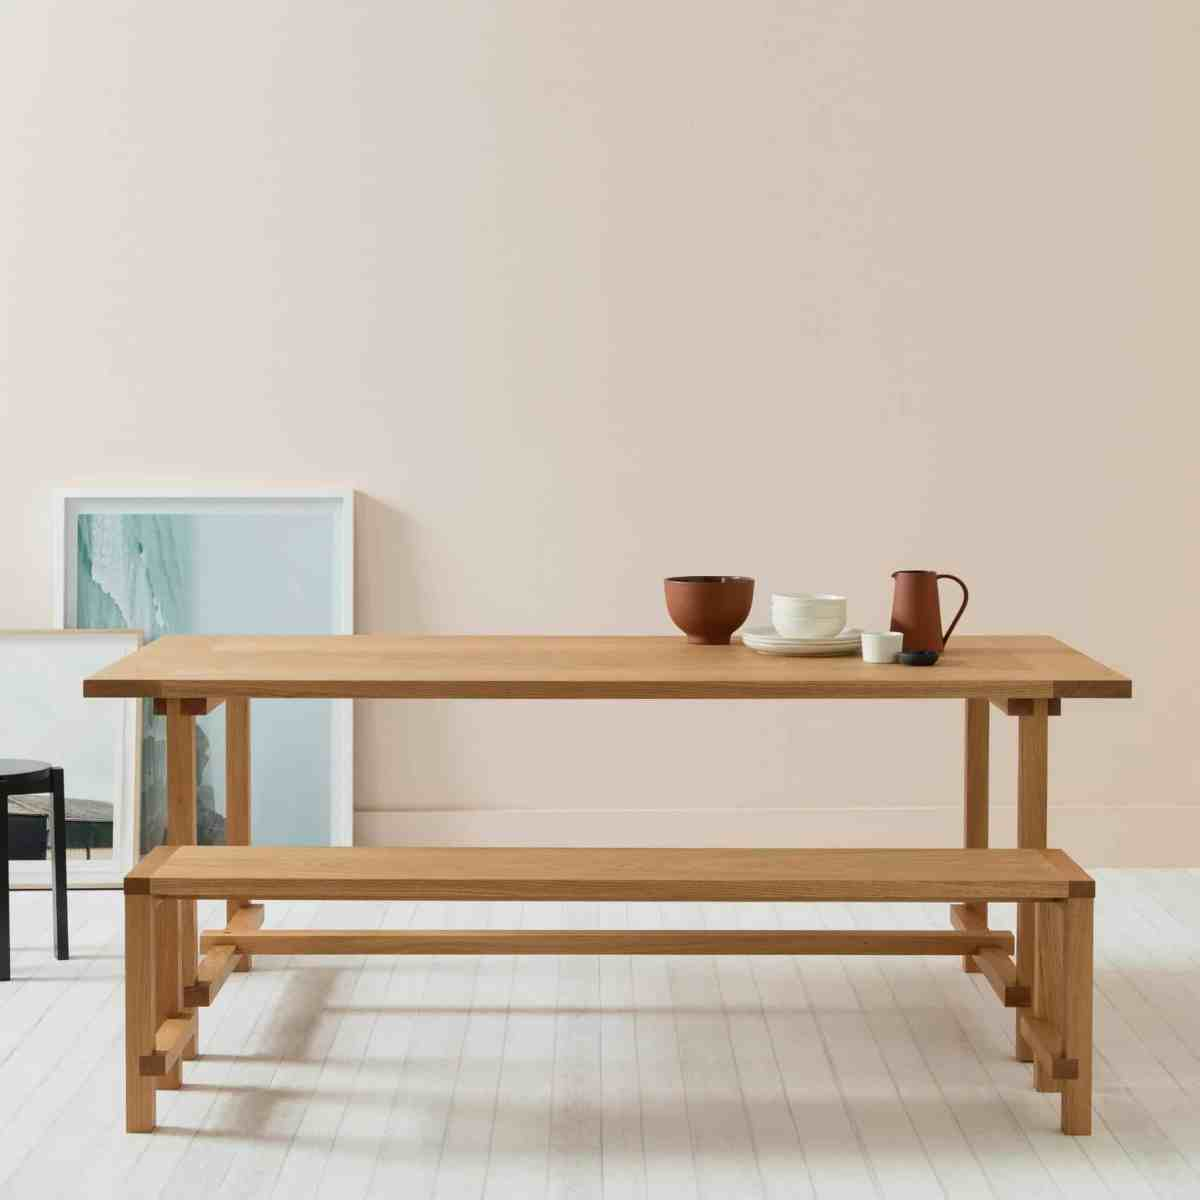 series-four-4-dining-table-another-country-002